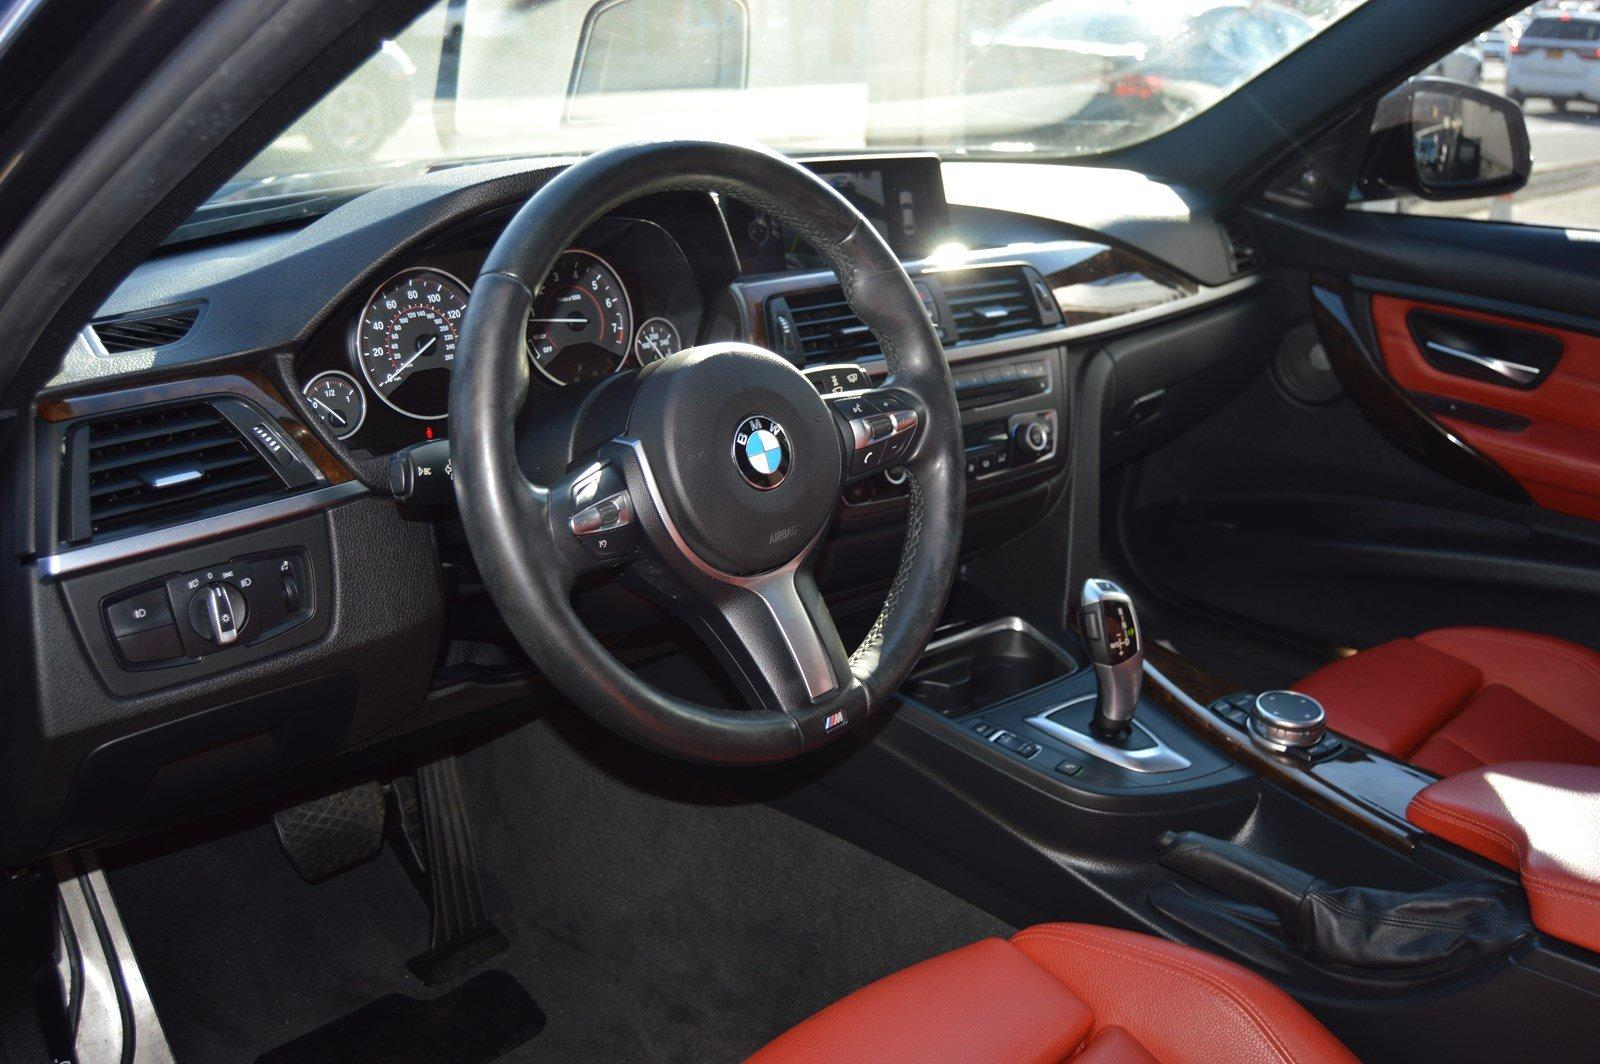 2015 Bmw 328i Xdrive Red Interior M Sport Pkg Navi Stock 8525 For Sale Near Great Neck Ny Ny Bmw Dealer